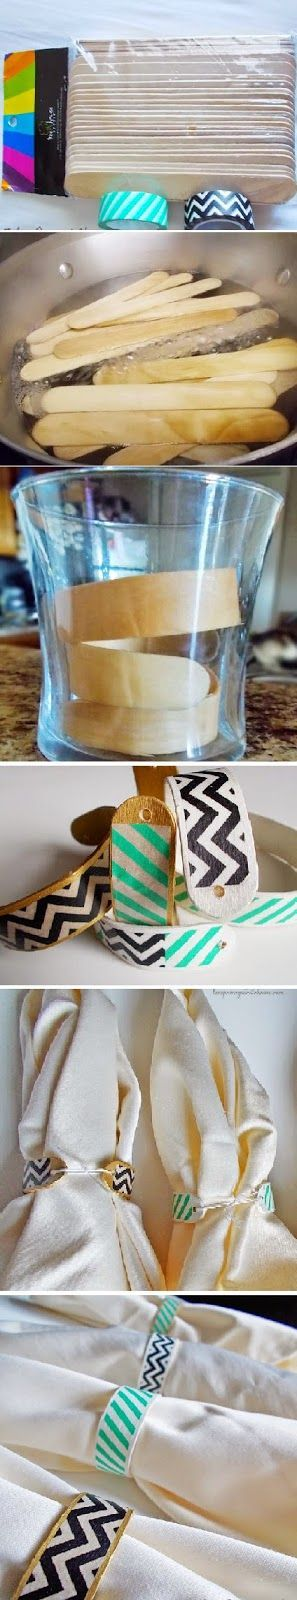 diy crafts: Washi Tape Napkin Rings